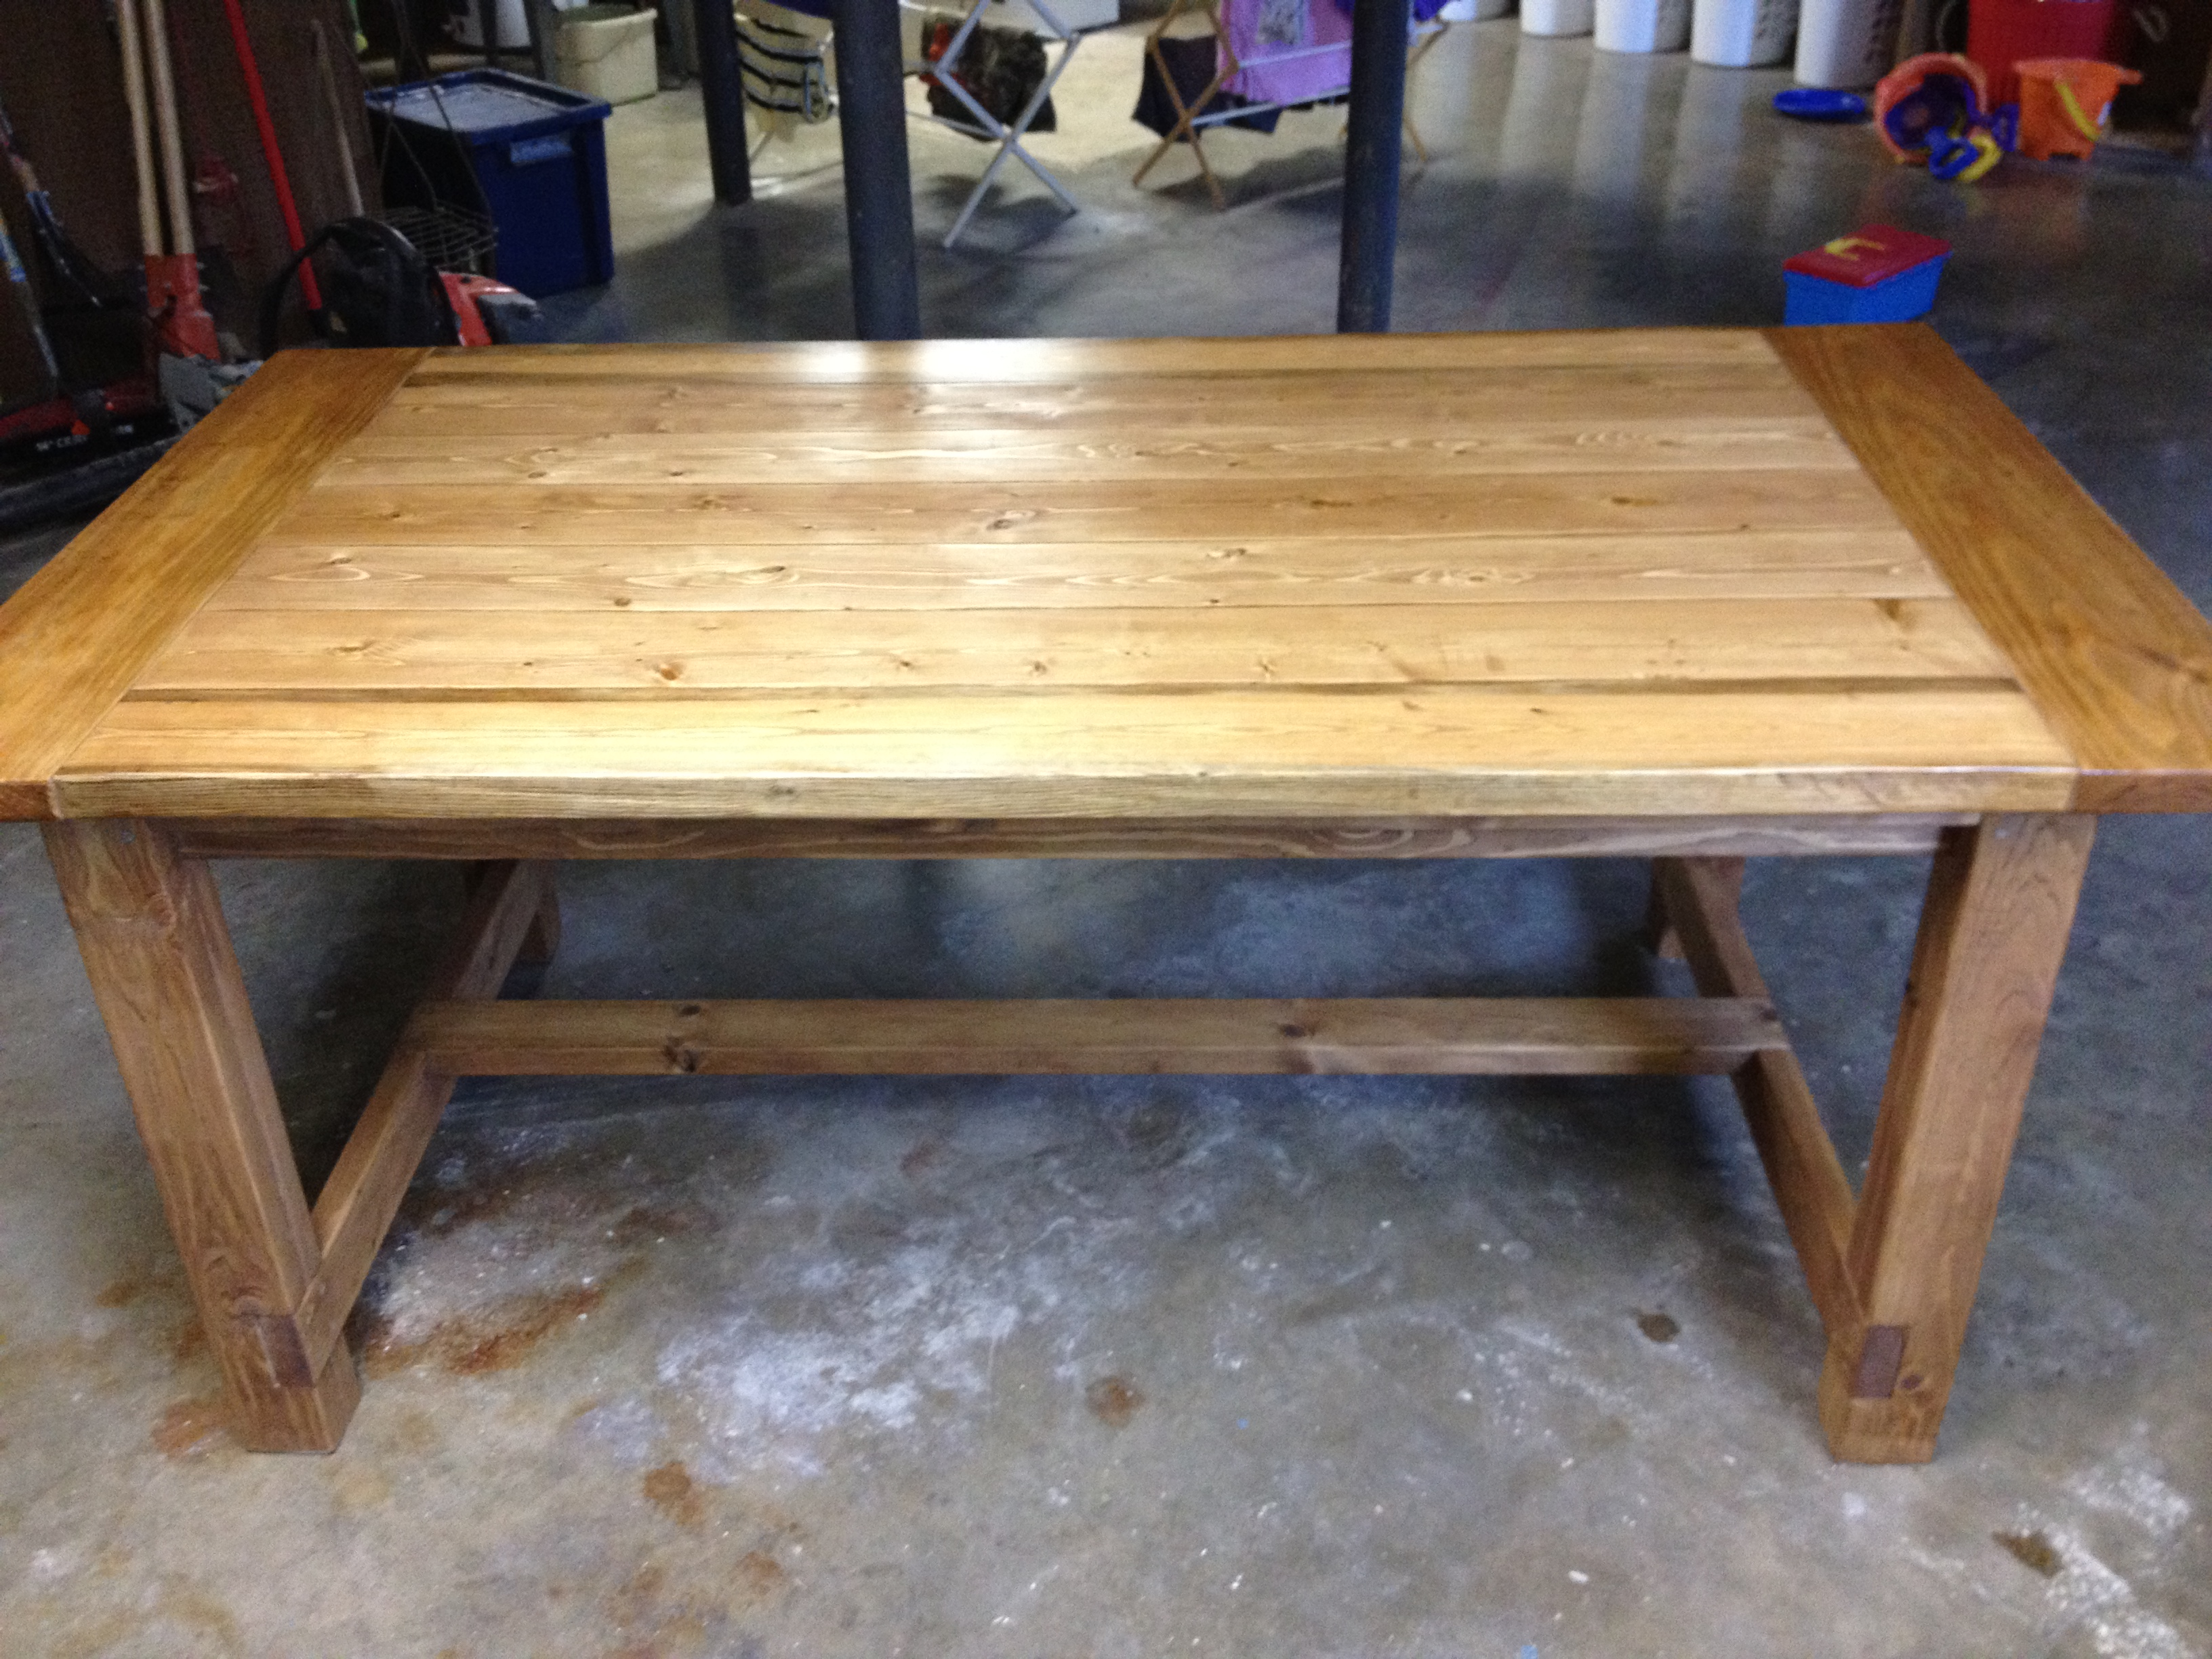 Free Farmhouse Table Plans: Free Plans For Making A Rustic Farmhouse Table